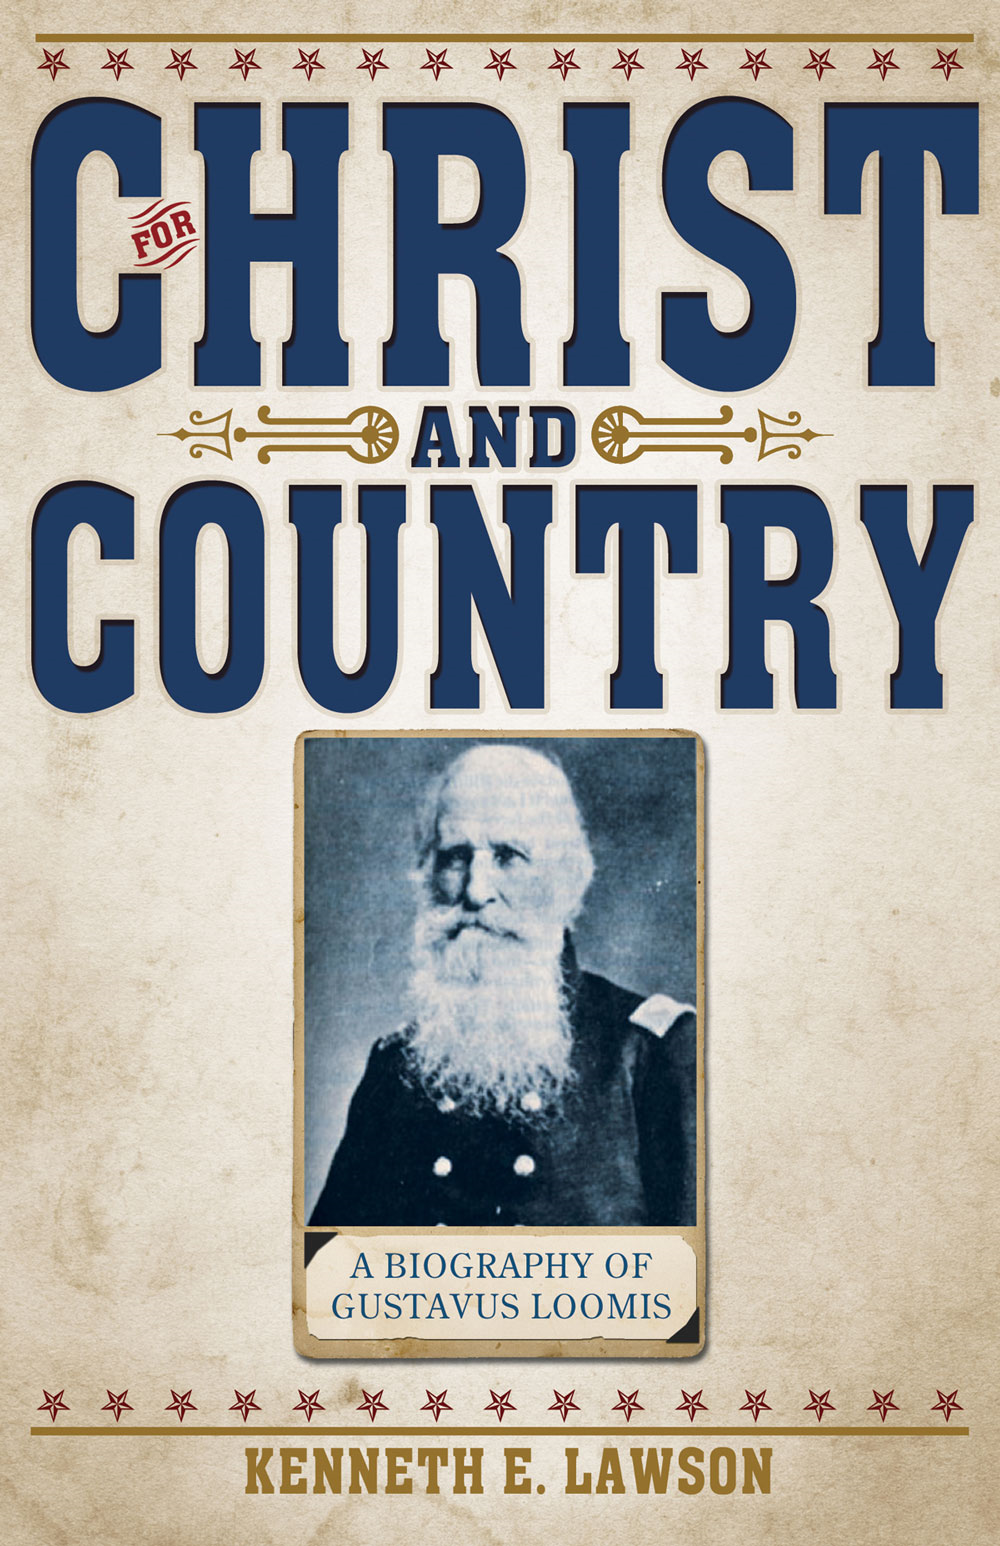 For Christ & Country